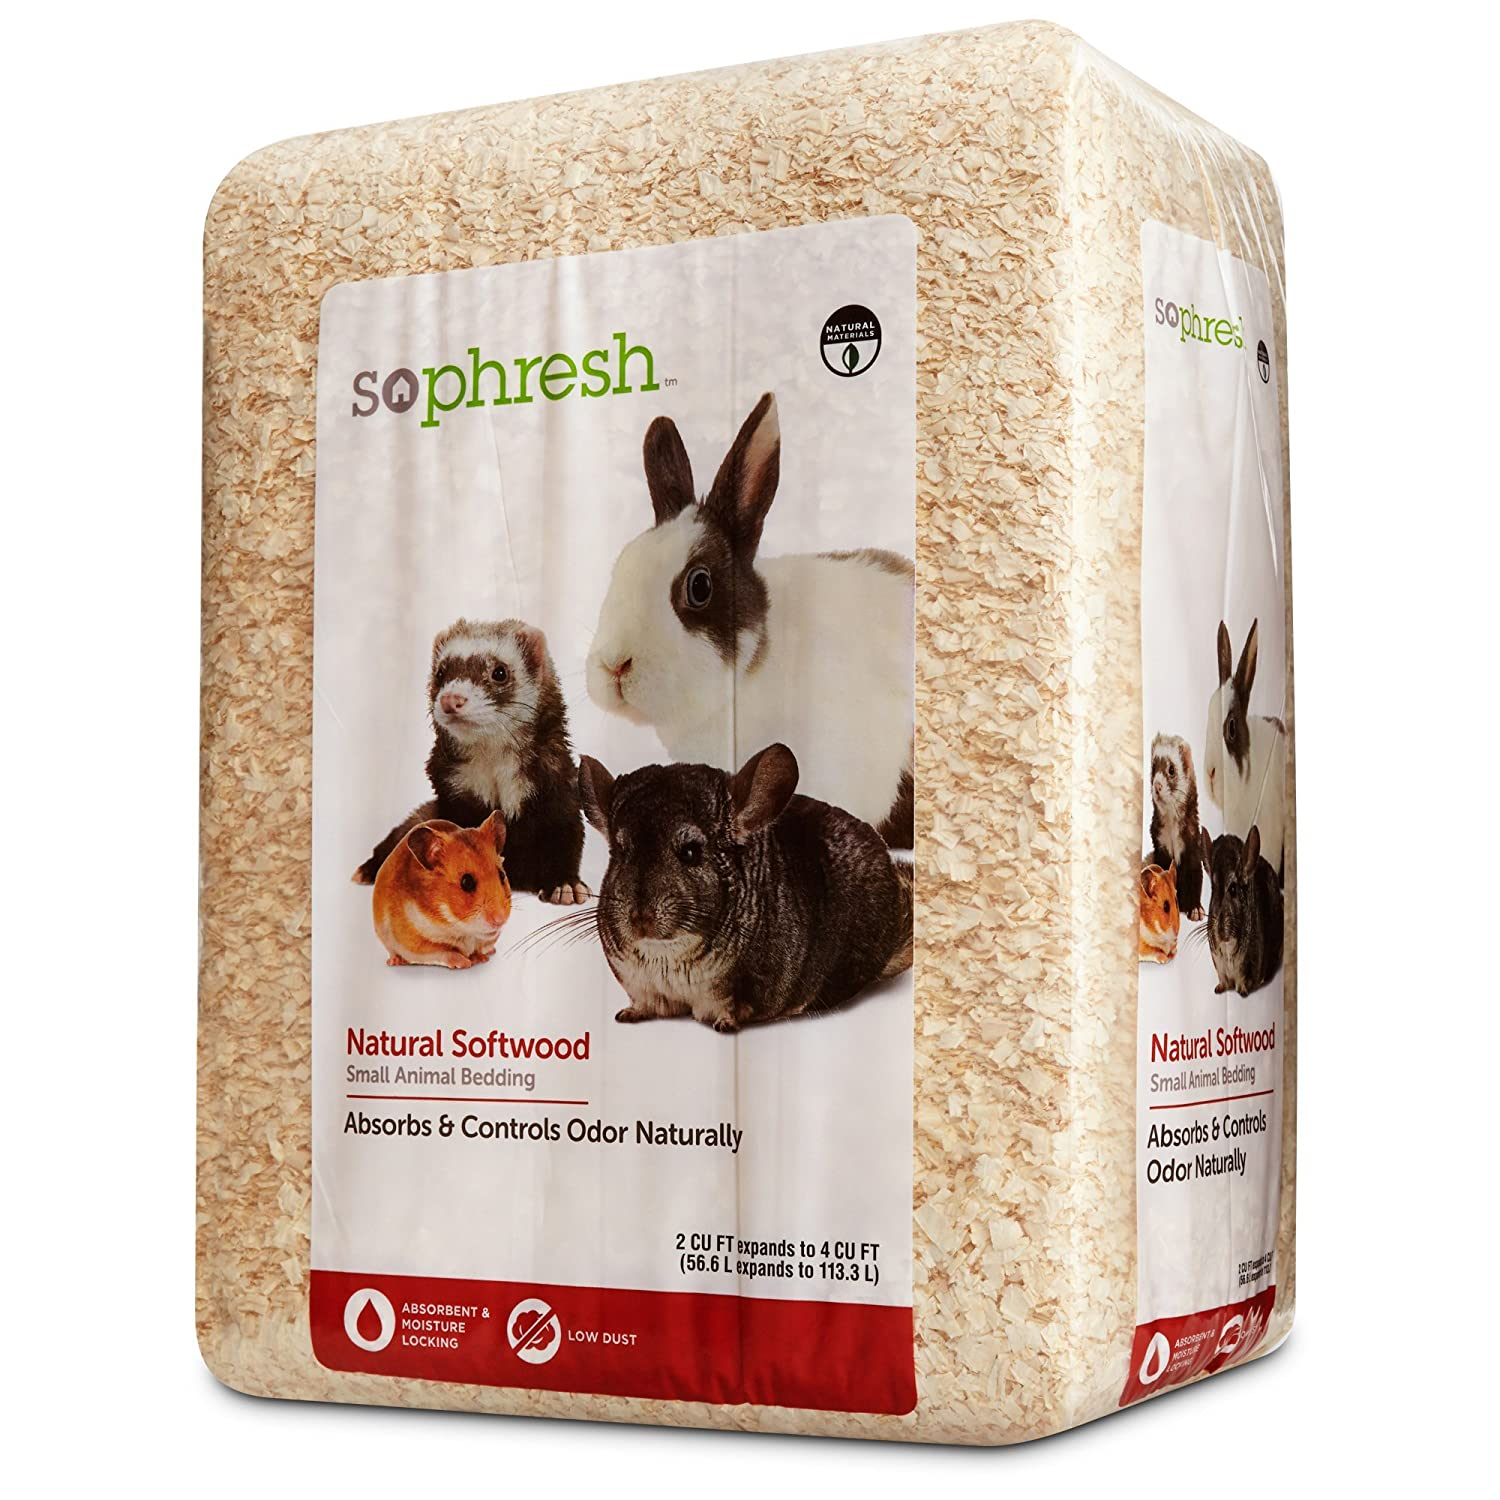 So Phresh Natural Softwood Small Animal Bedding 56.6 Liters (500 cu. in.)